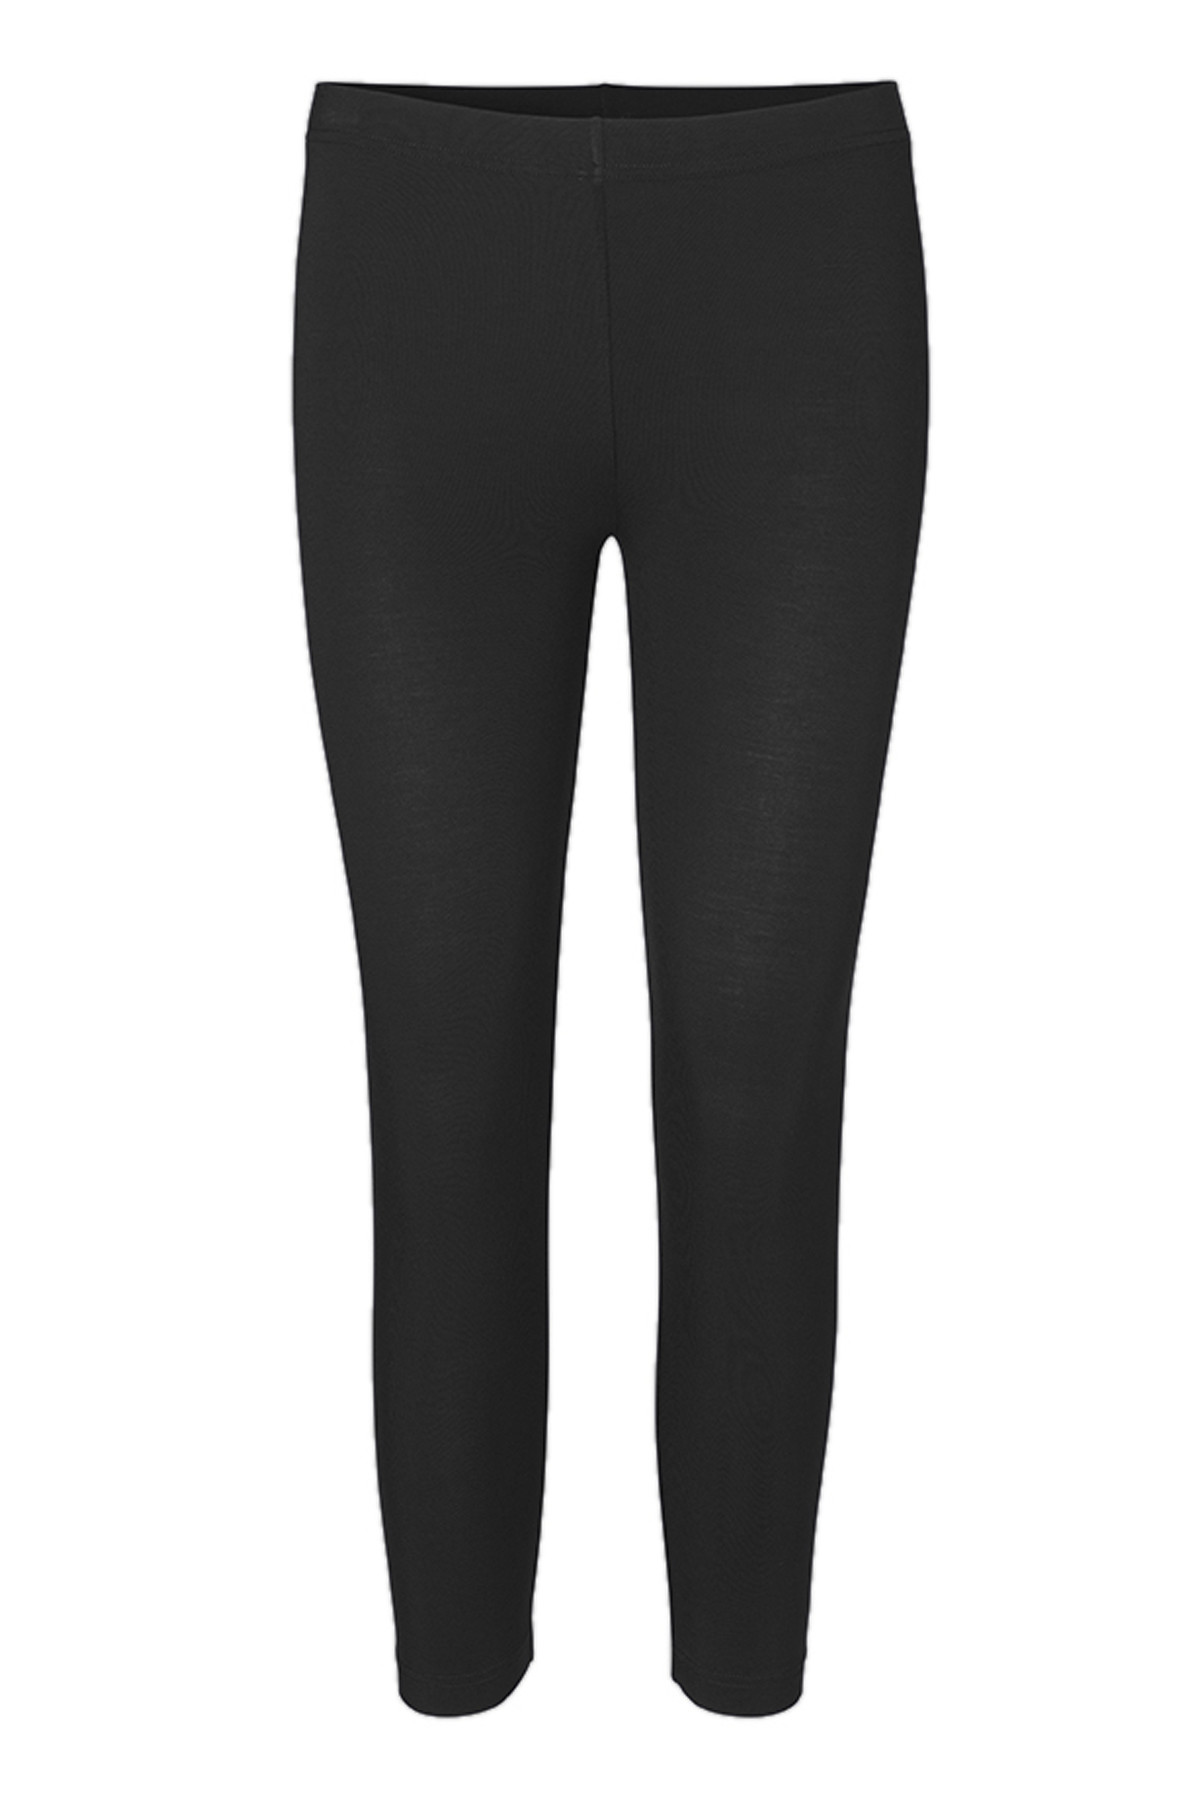 NOA NOA LEGGINGS 1-9383-1 00000 (Black, XXS)